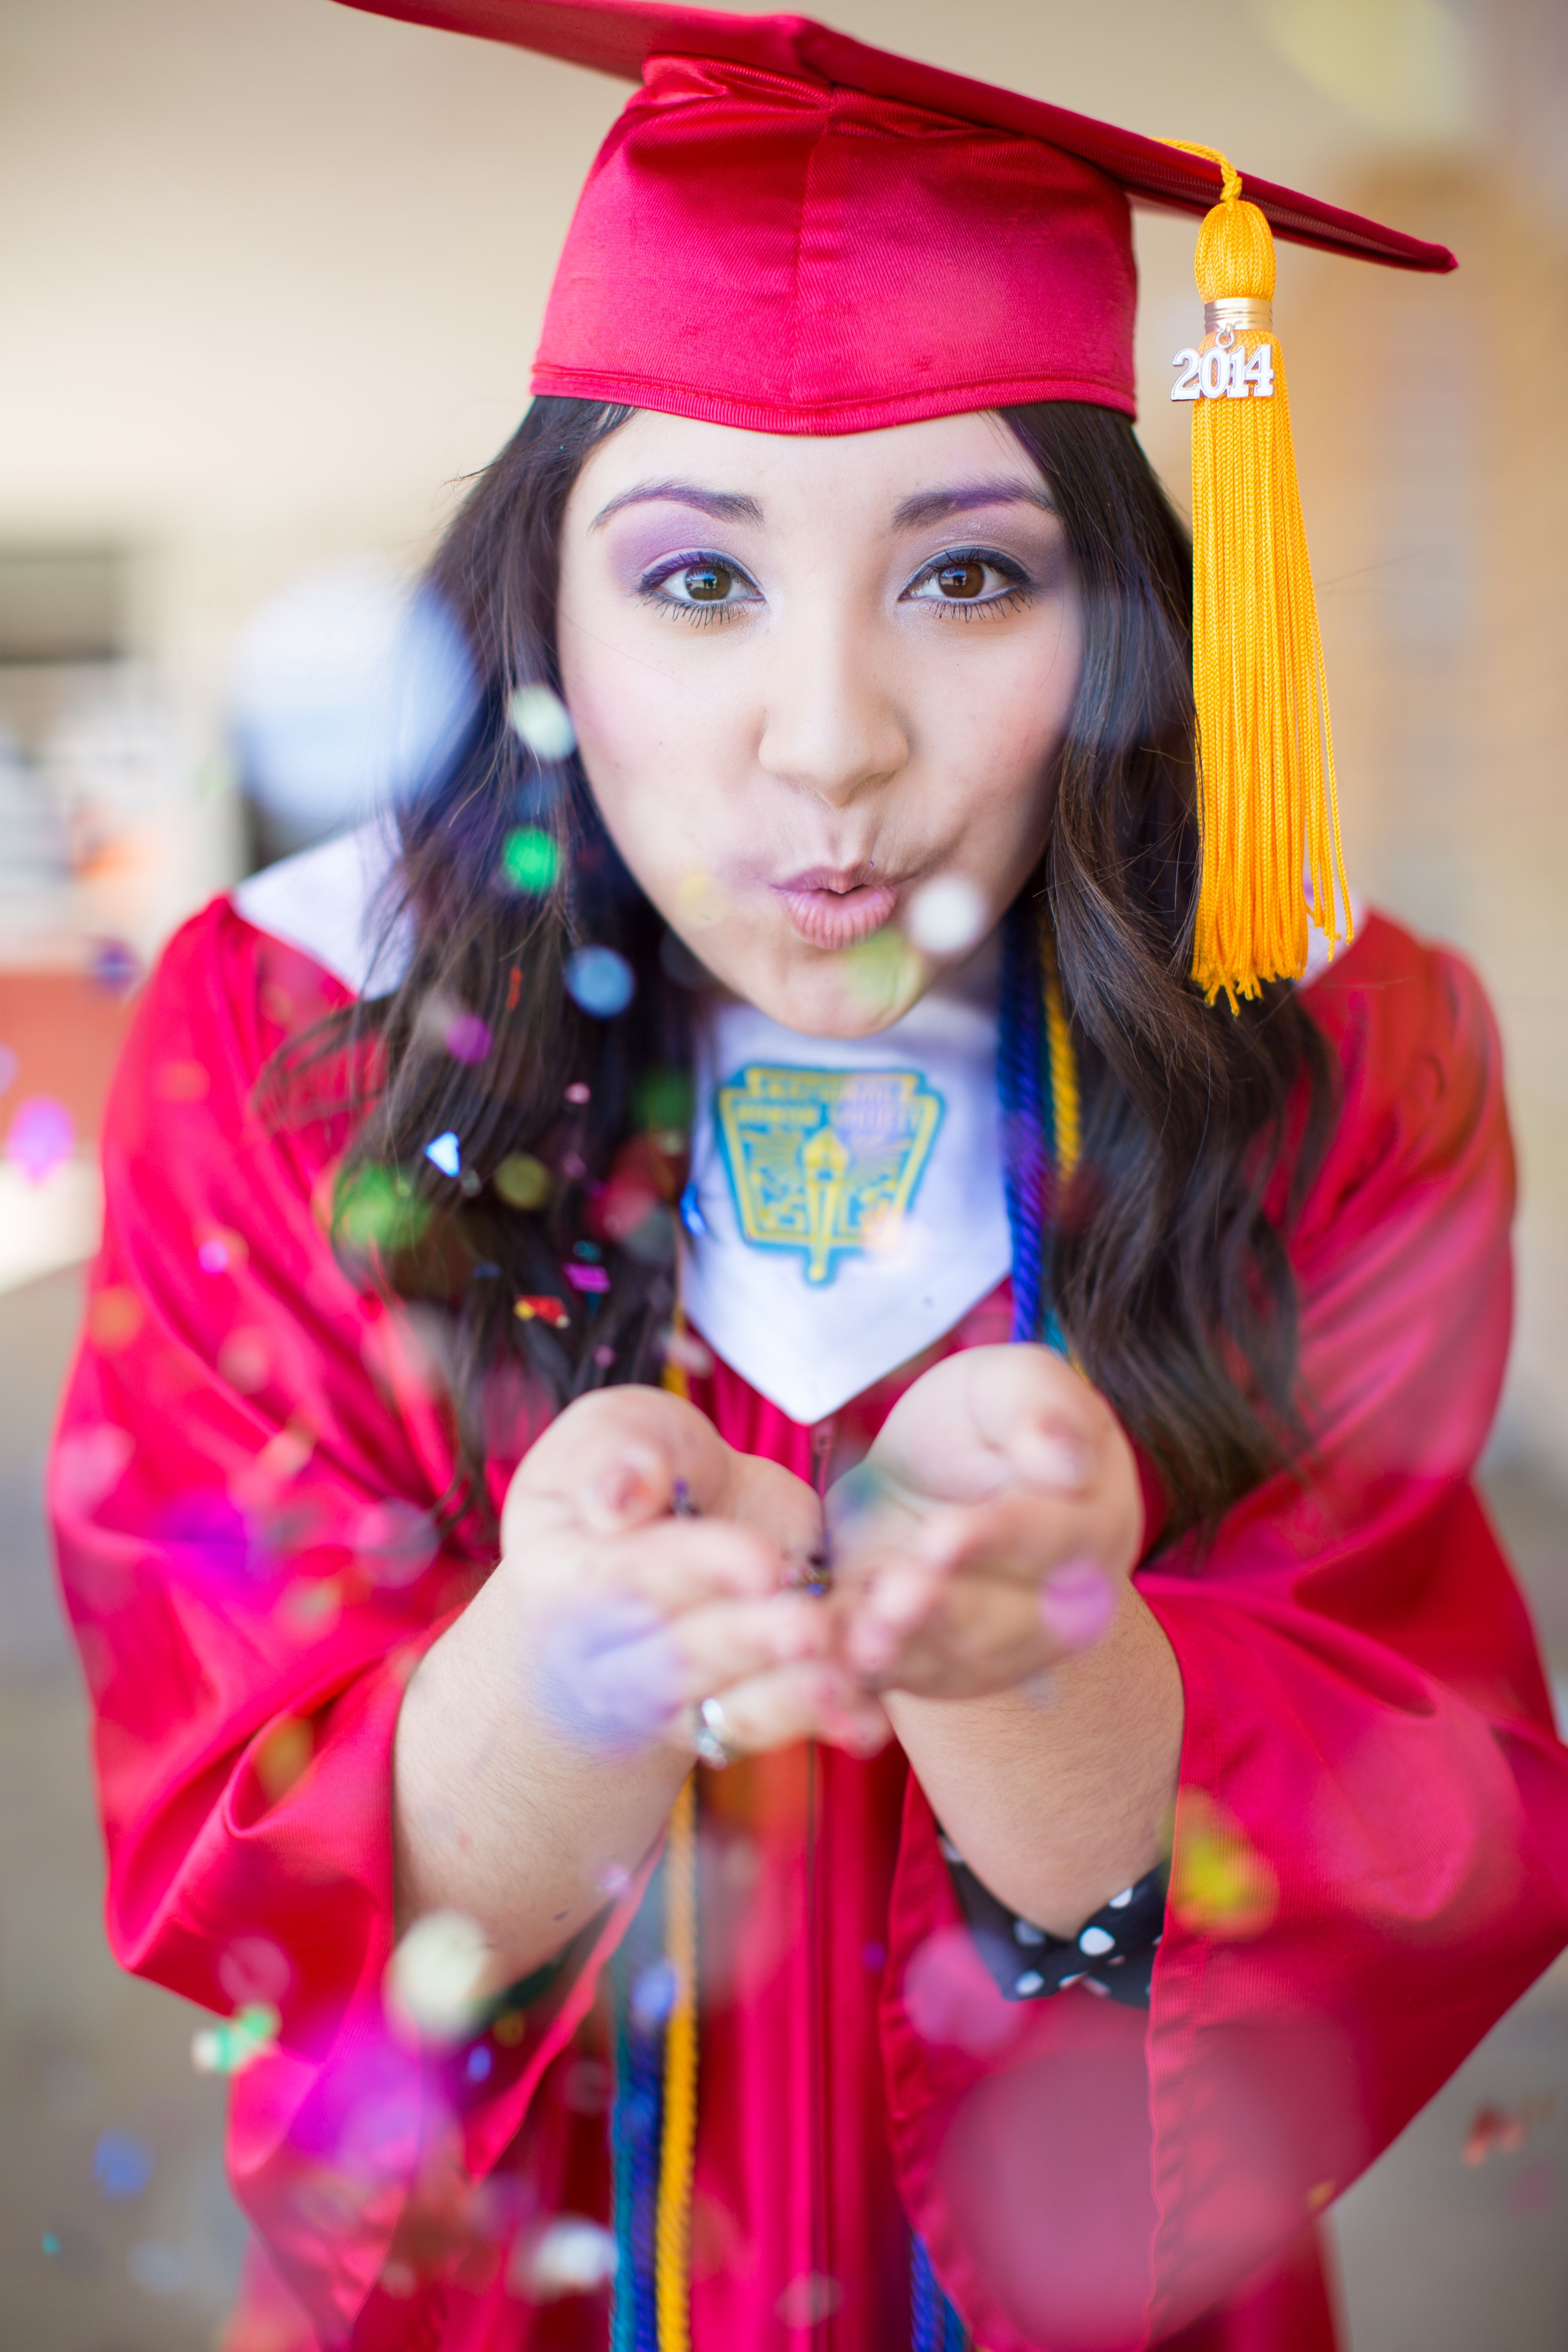 Cap & gown with glitter/confetti for senior picture! By Haley Kruse ...